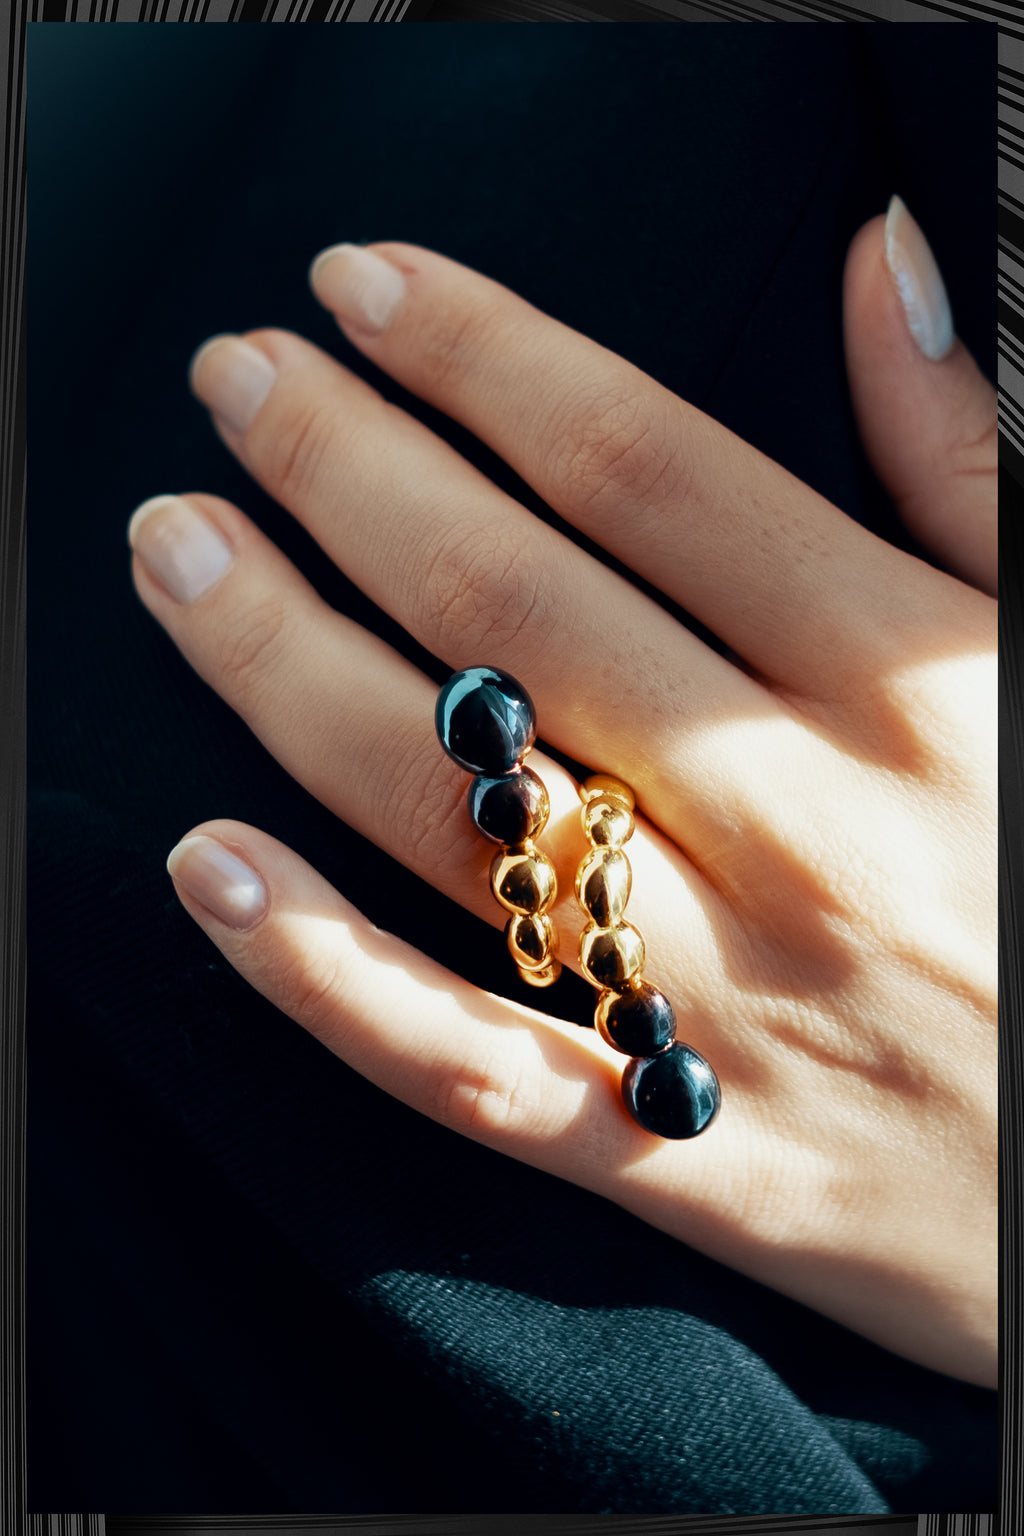 Beam Ring | Free Delivery - 2-3 Weeks Shipping